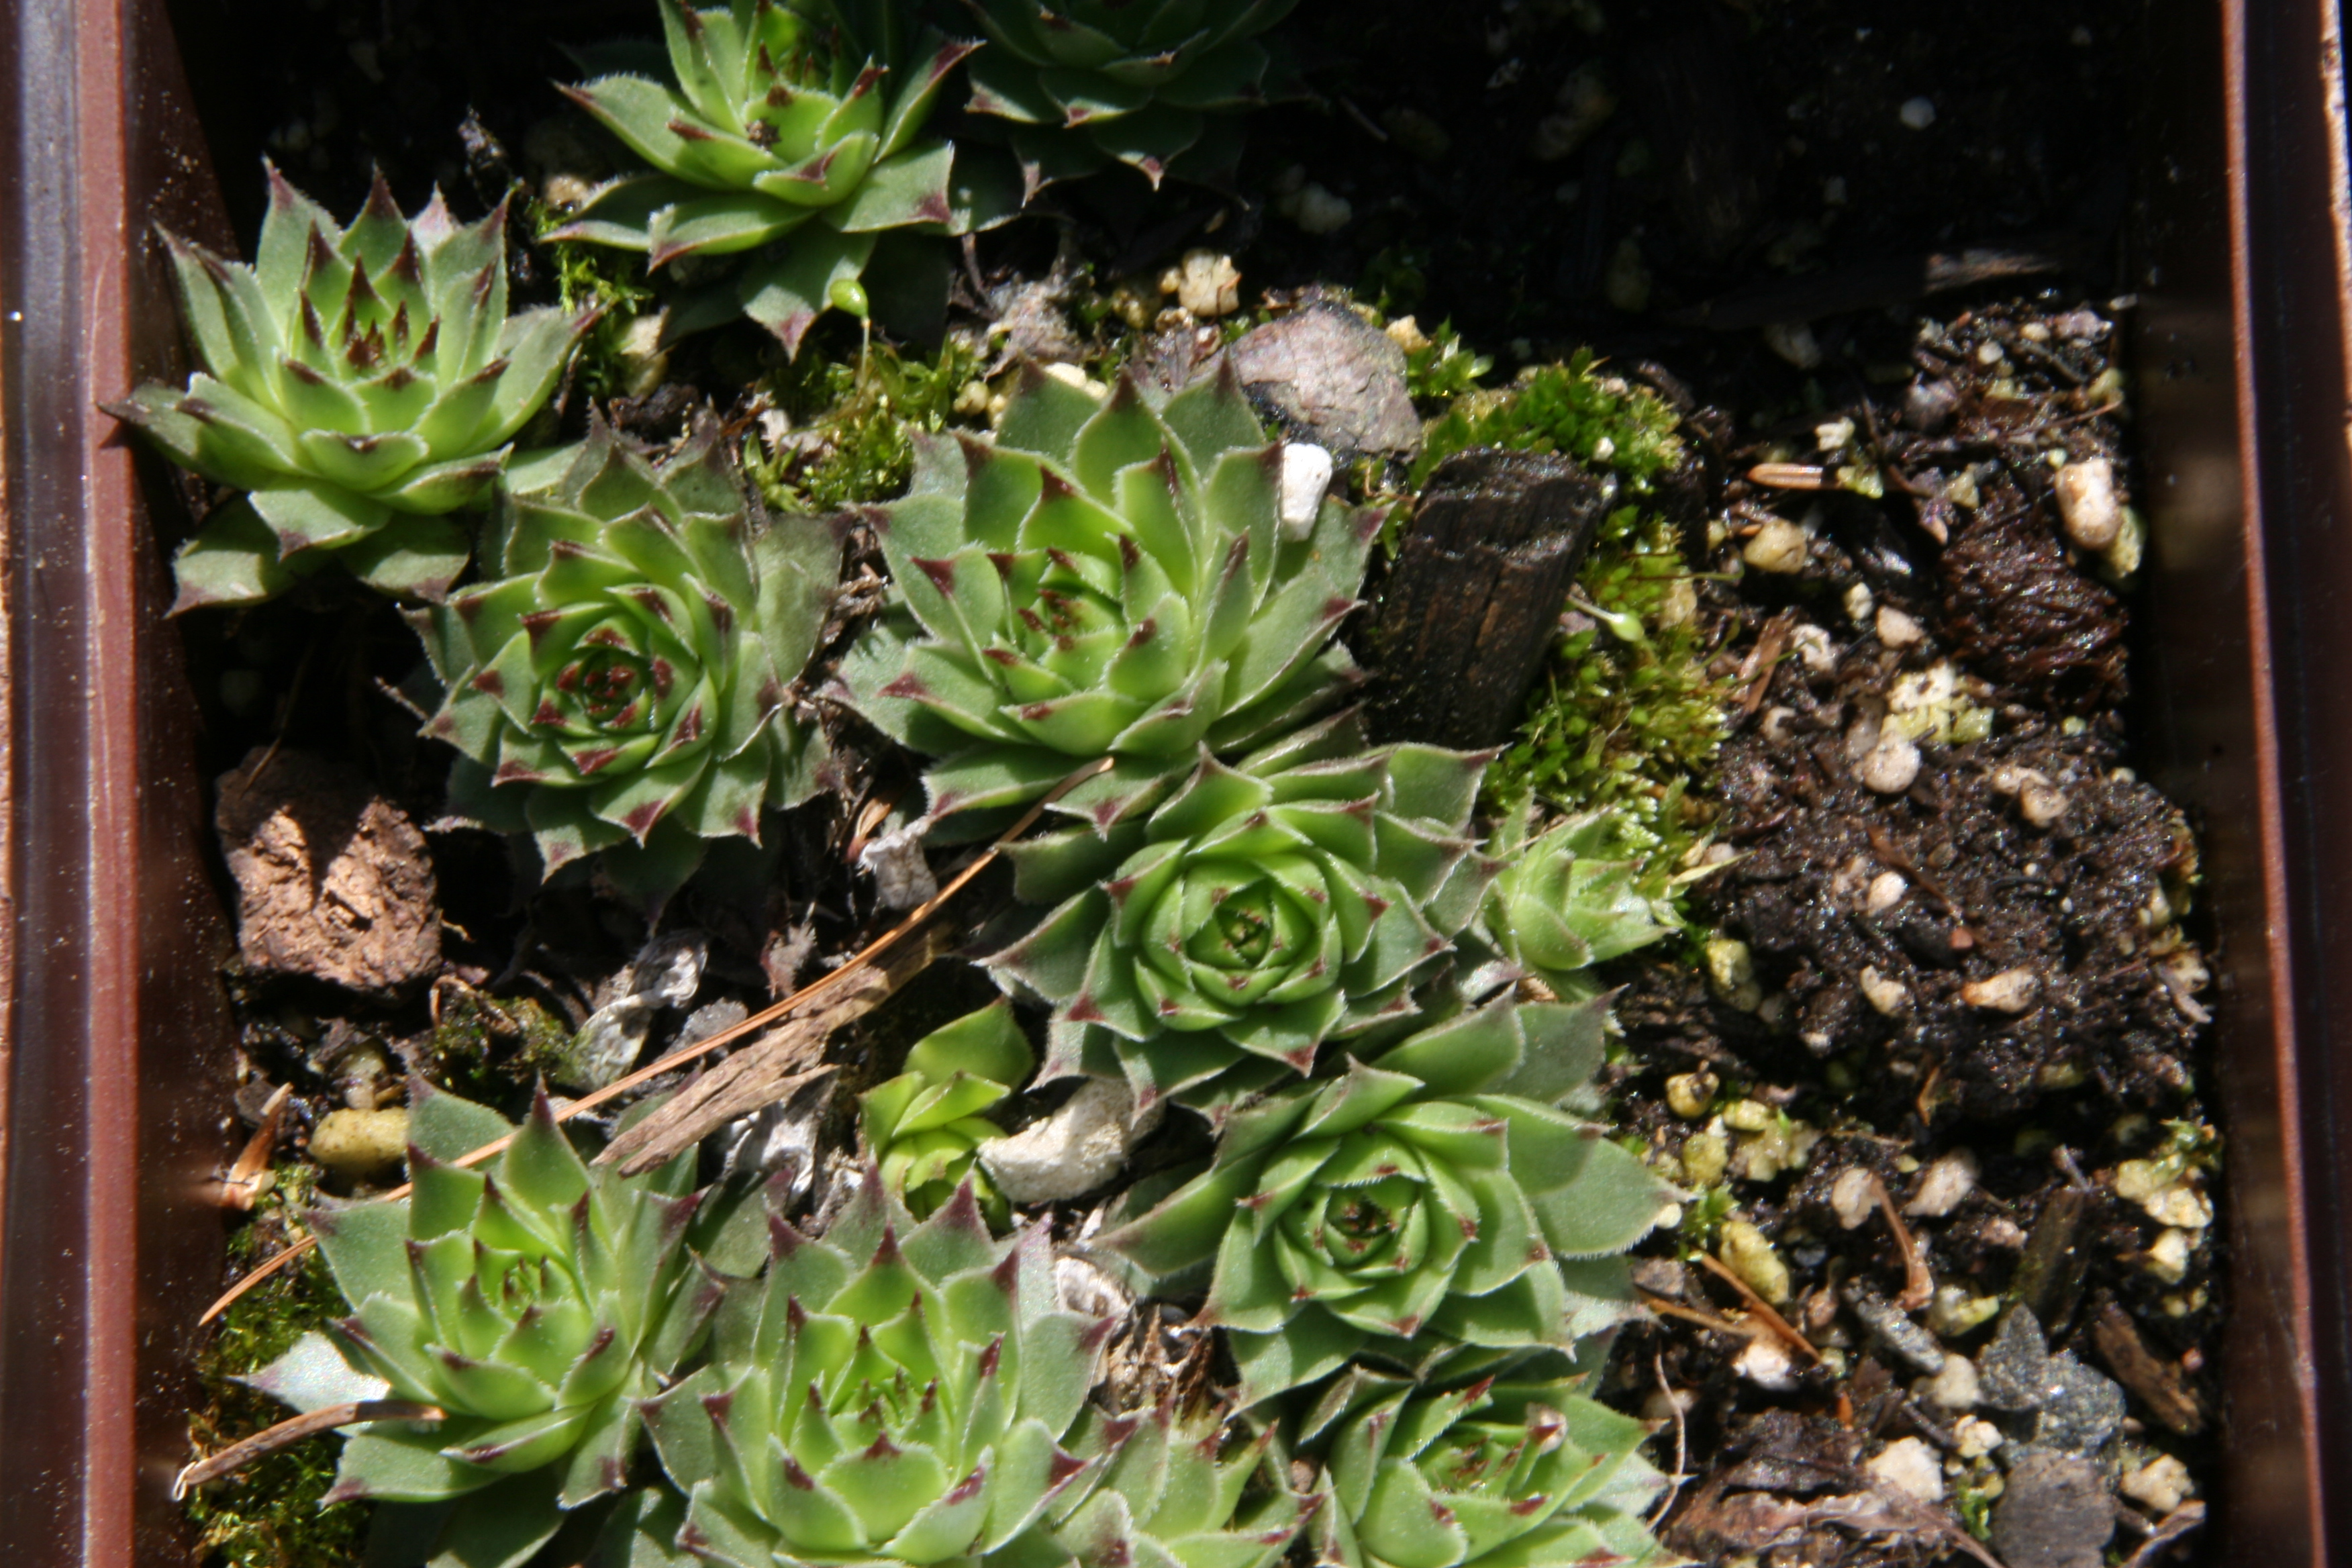 Sempervivum calcareum Kalkhauswurz